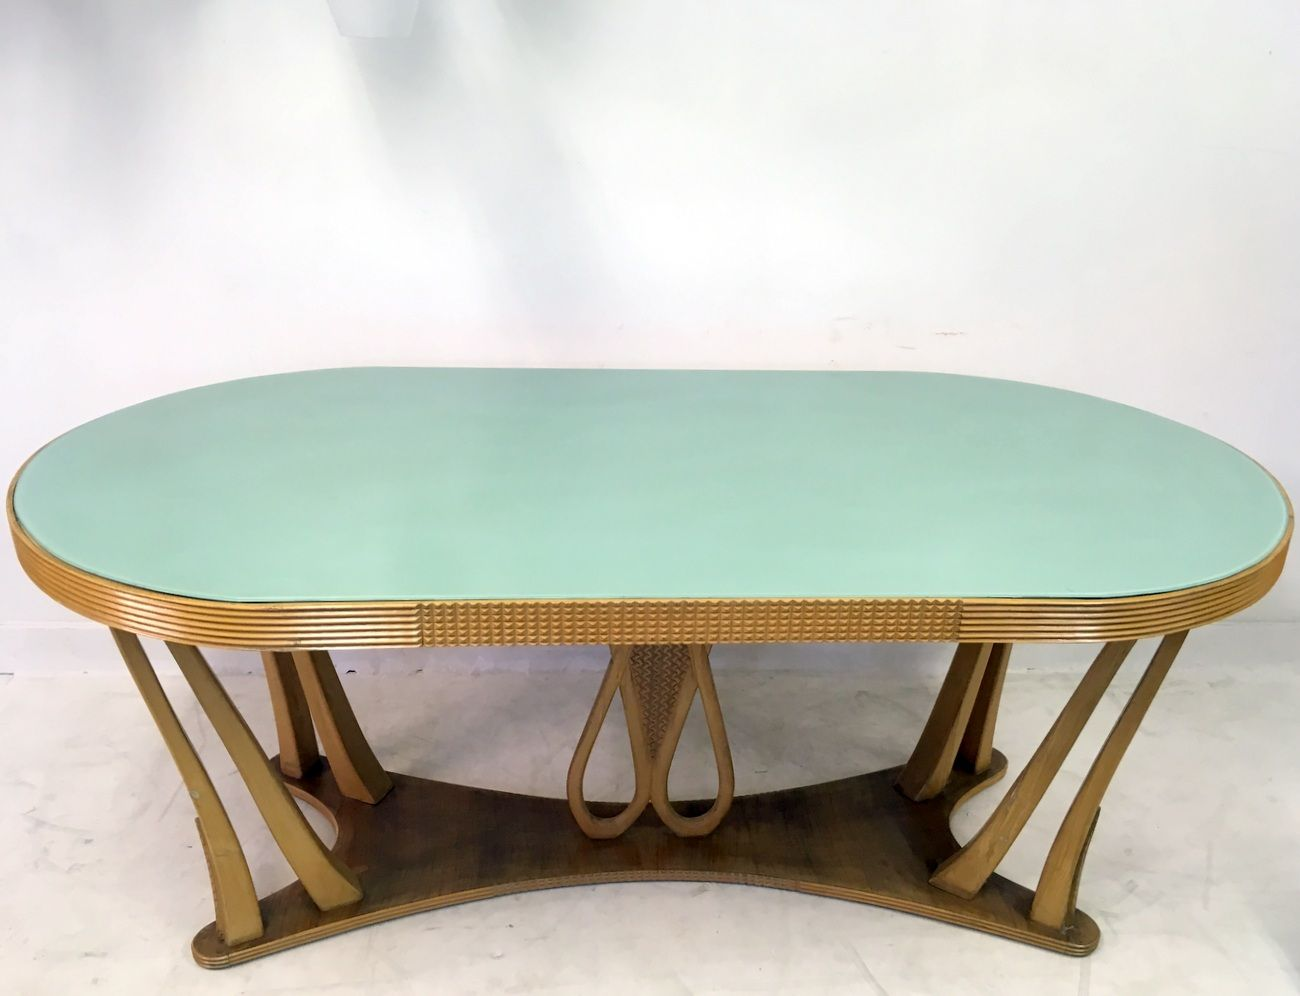 vintage italian dining table with glass top 1940s for sale at pamono. Black Bedroom Furniture Sets. Home Design Ideas